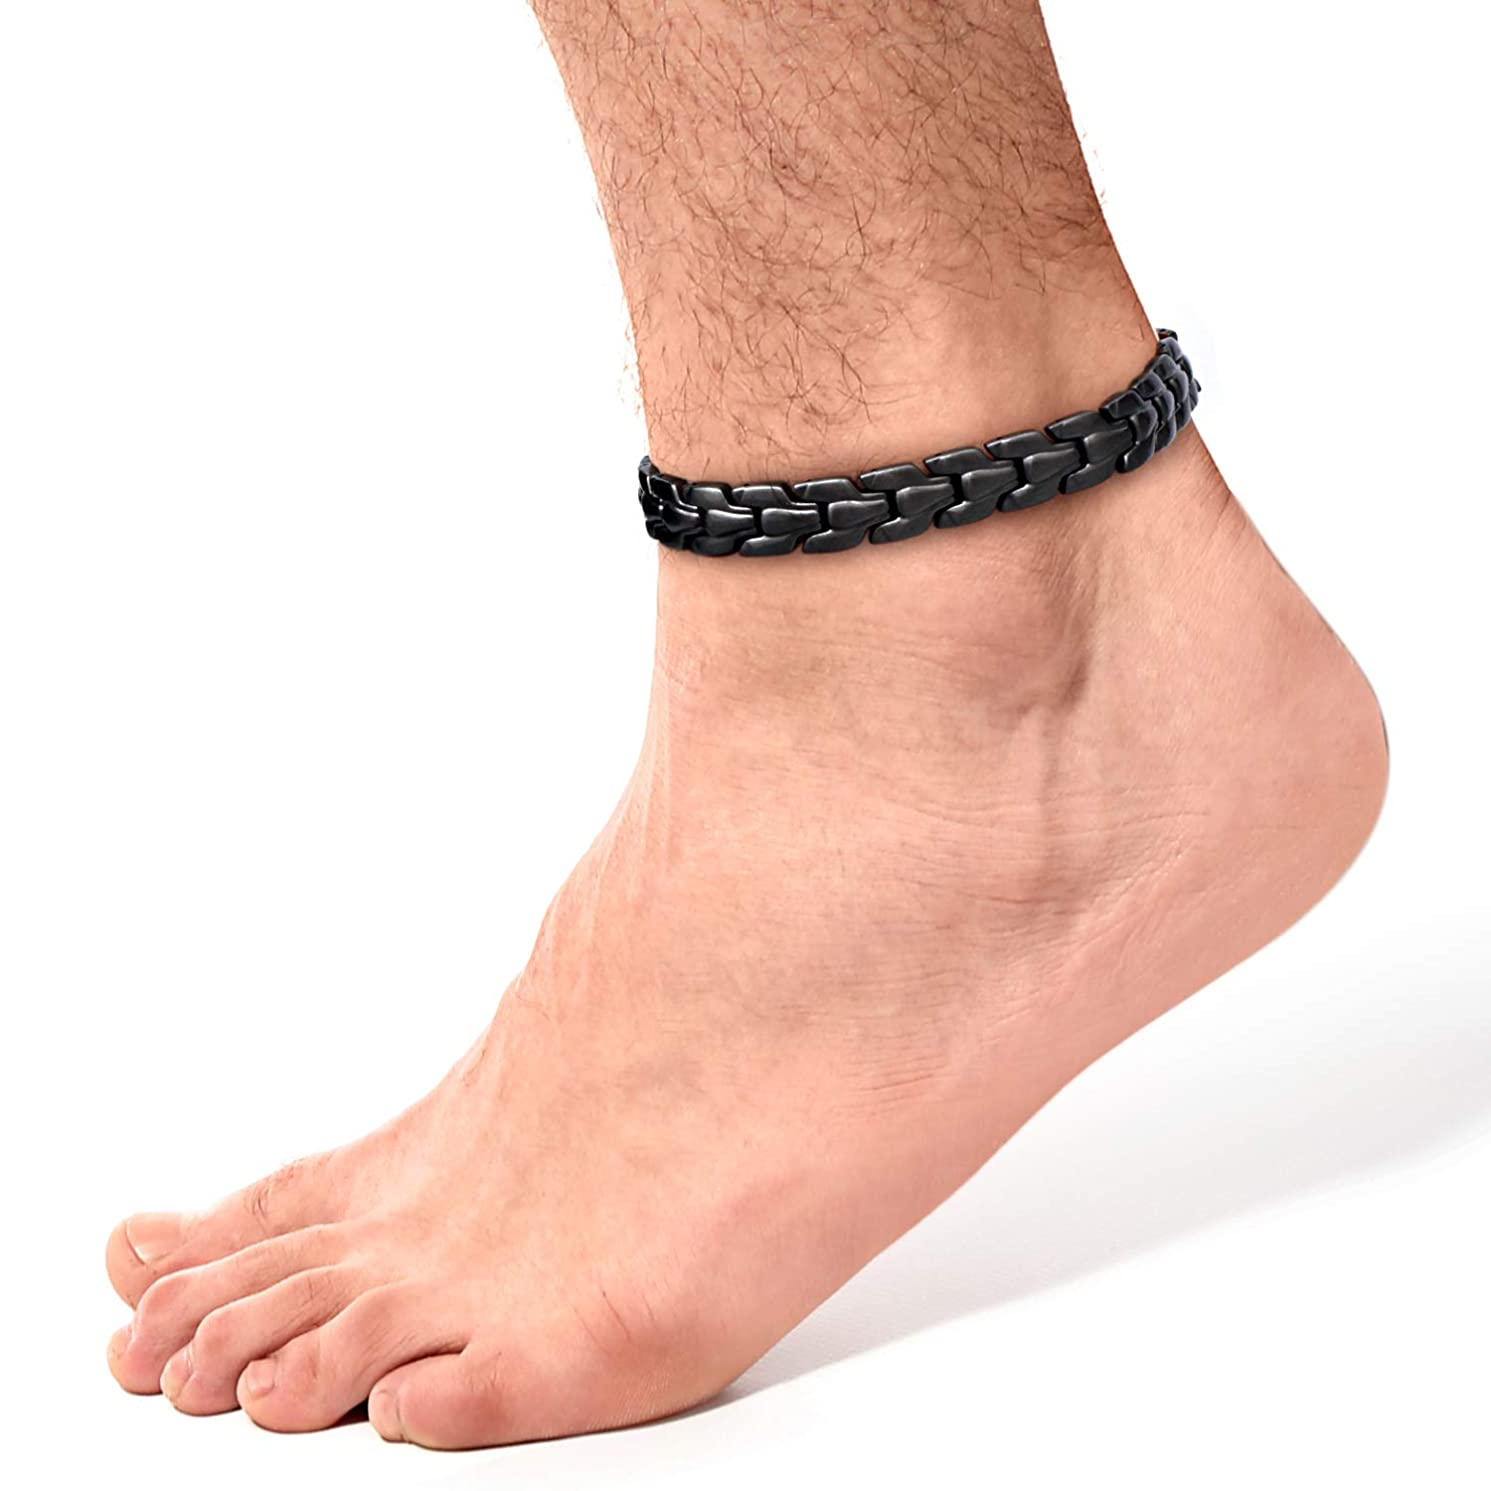 Rainso Pure Copper Magnetic Therapy Anklets for Men Pain Relief for Arthritis Adjustable